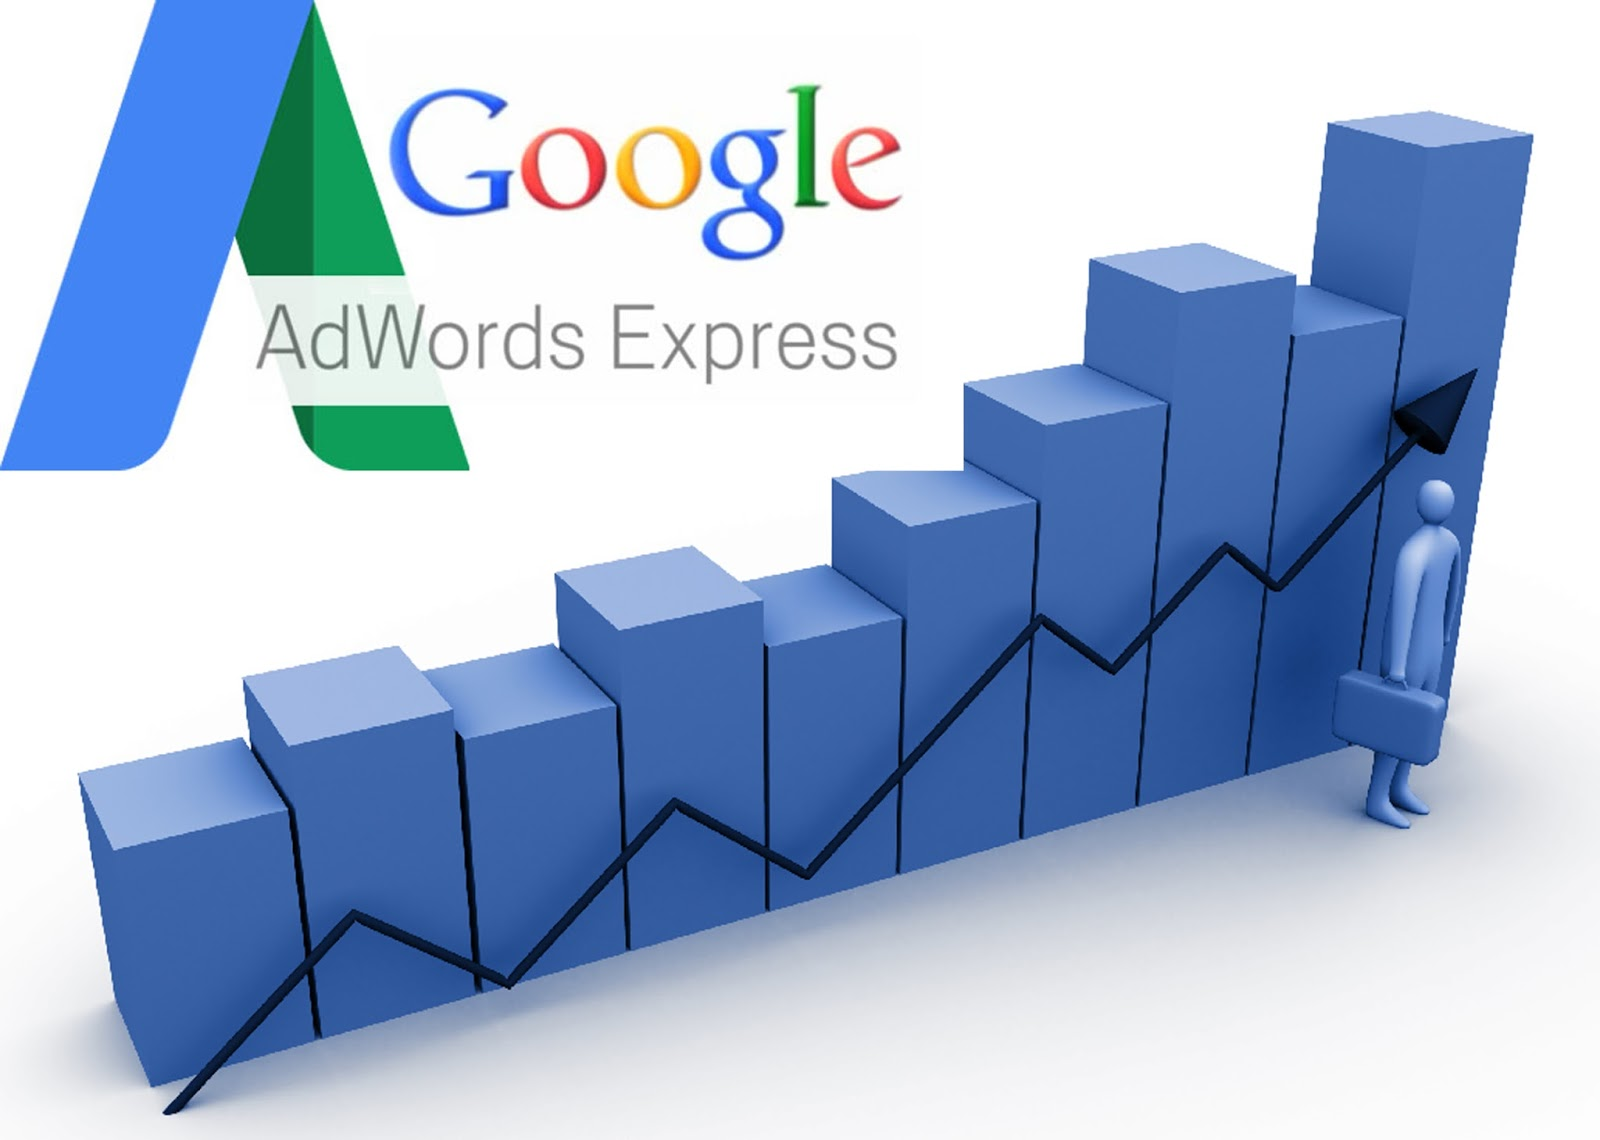 Google Launches New Home Services Ads within AdWords Express 1